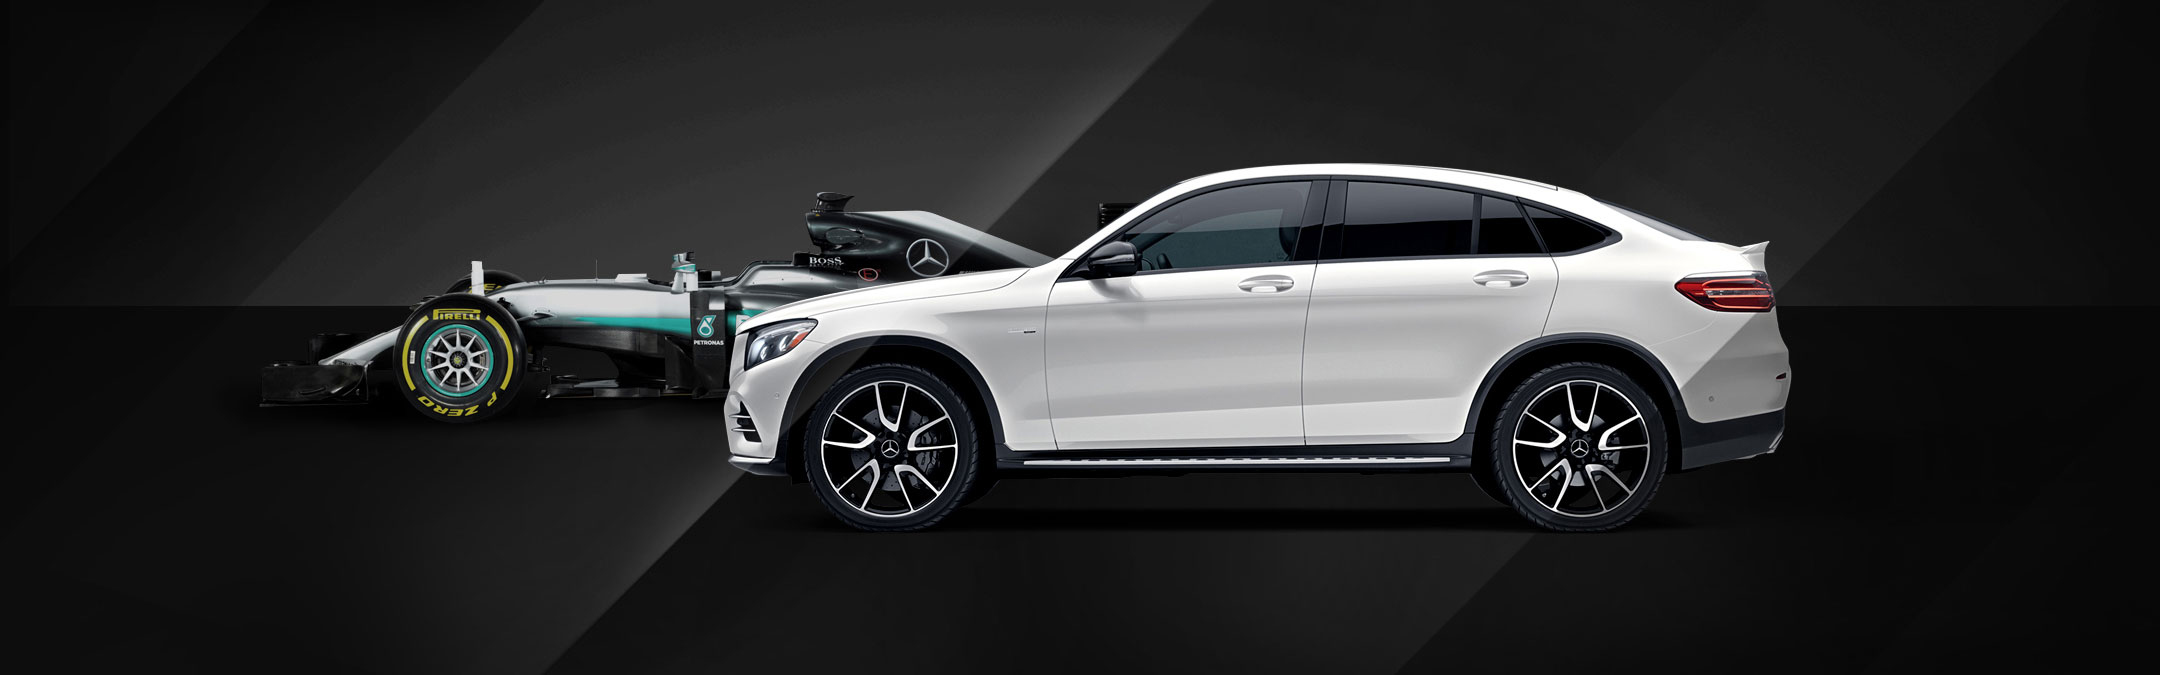 2018 Mercedes-AMG GLC Coupe Performance